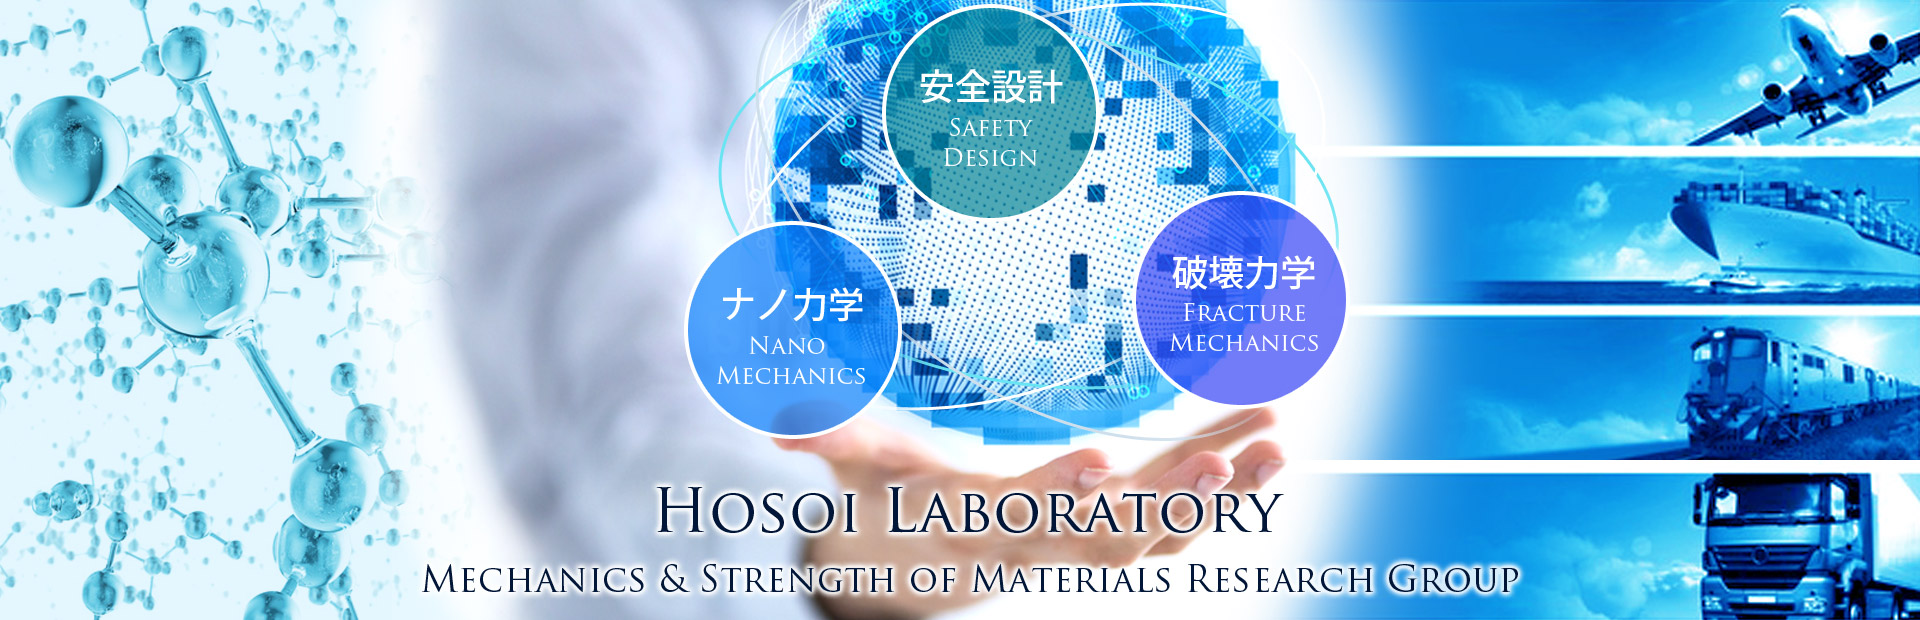 Hosoi Laboratory, Mechanics & Strength of Materials Research Group, 破壊力学 Fracture Mechanics, 安全設計 Safety Design, ナノ力学 Nano Mechanics